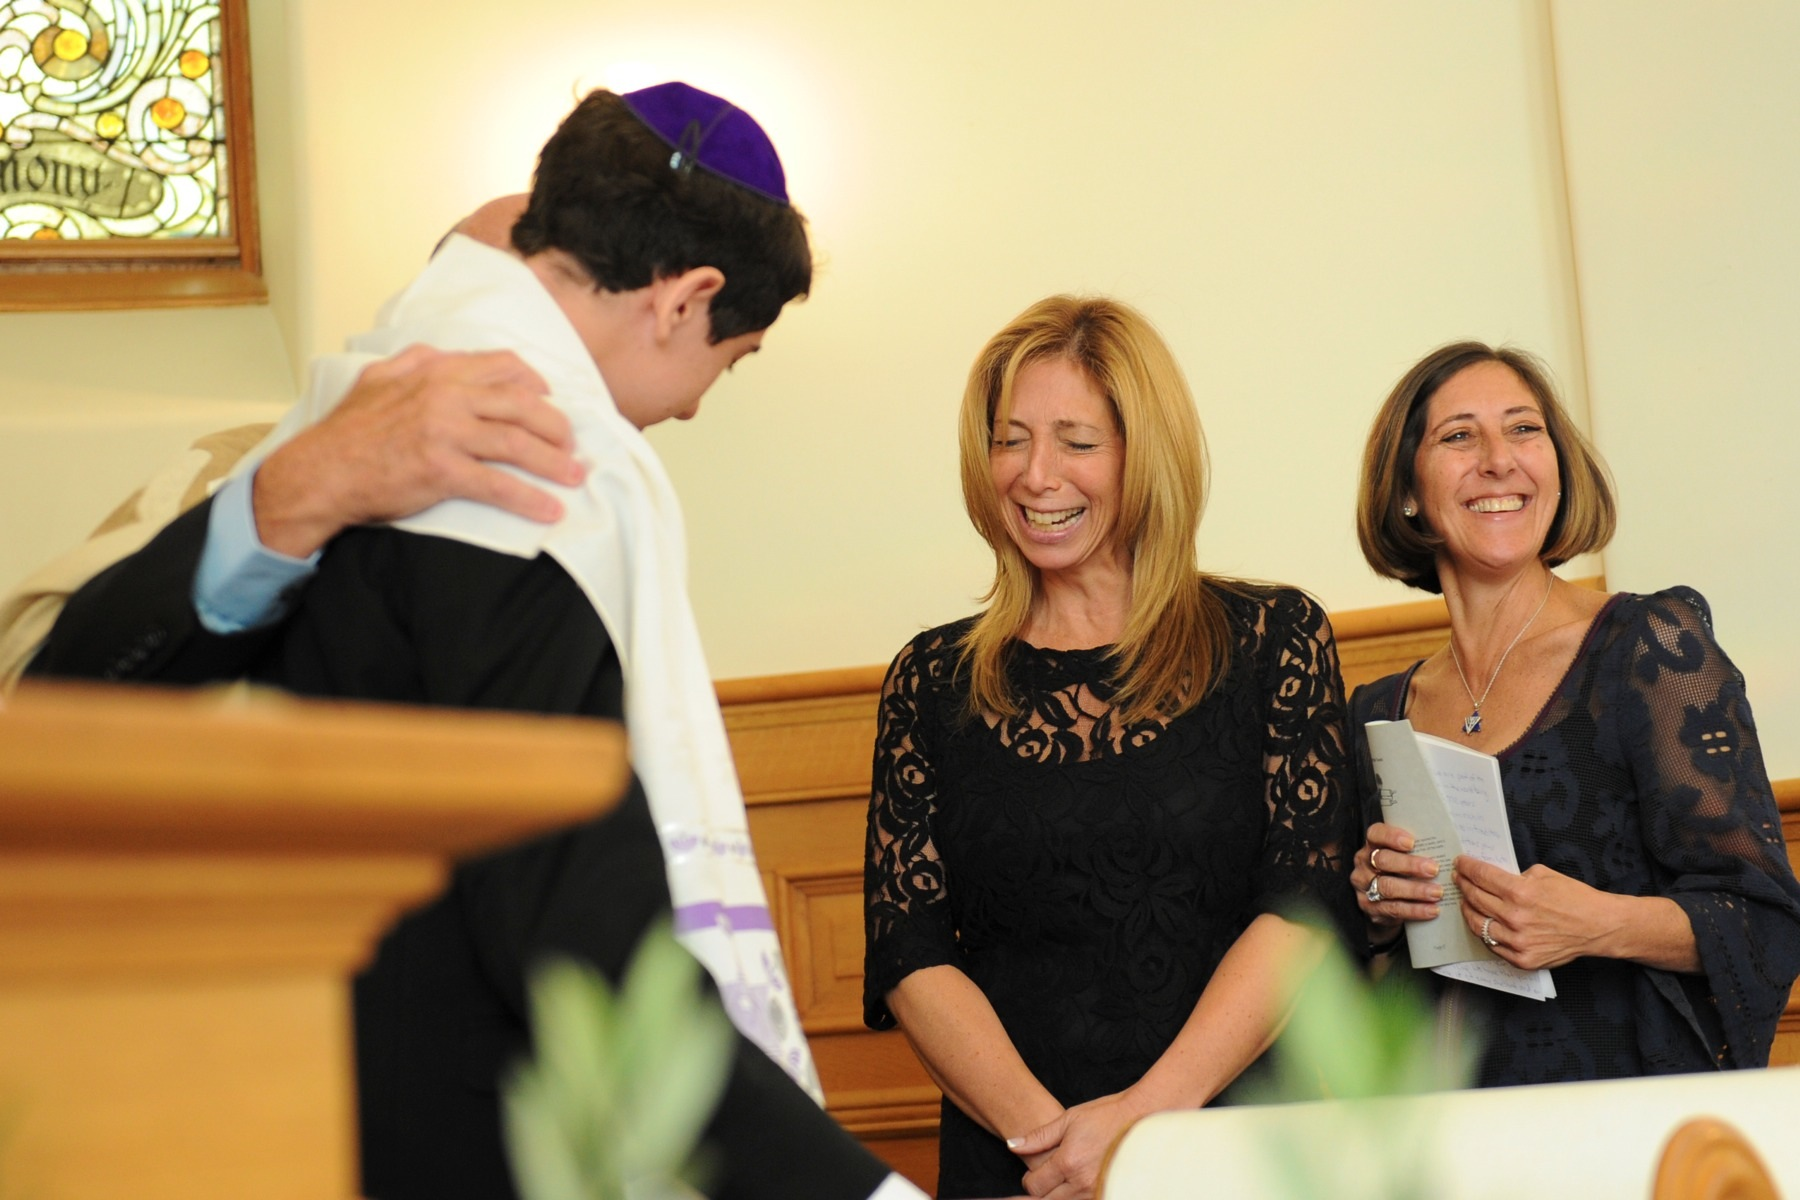 bat_mitzvah_bar_mitzvah_san_francisco_bay_area_photographer_party_photography_146